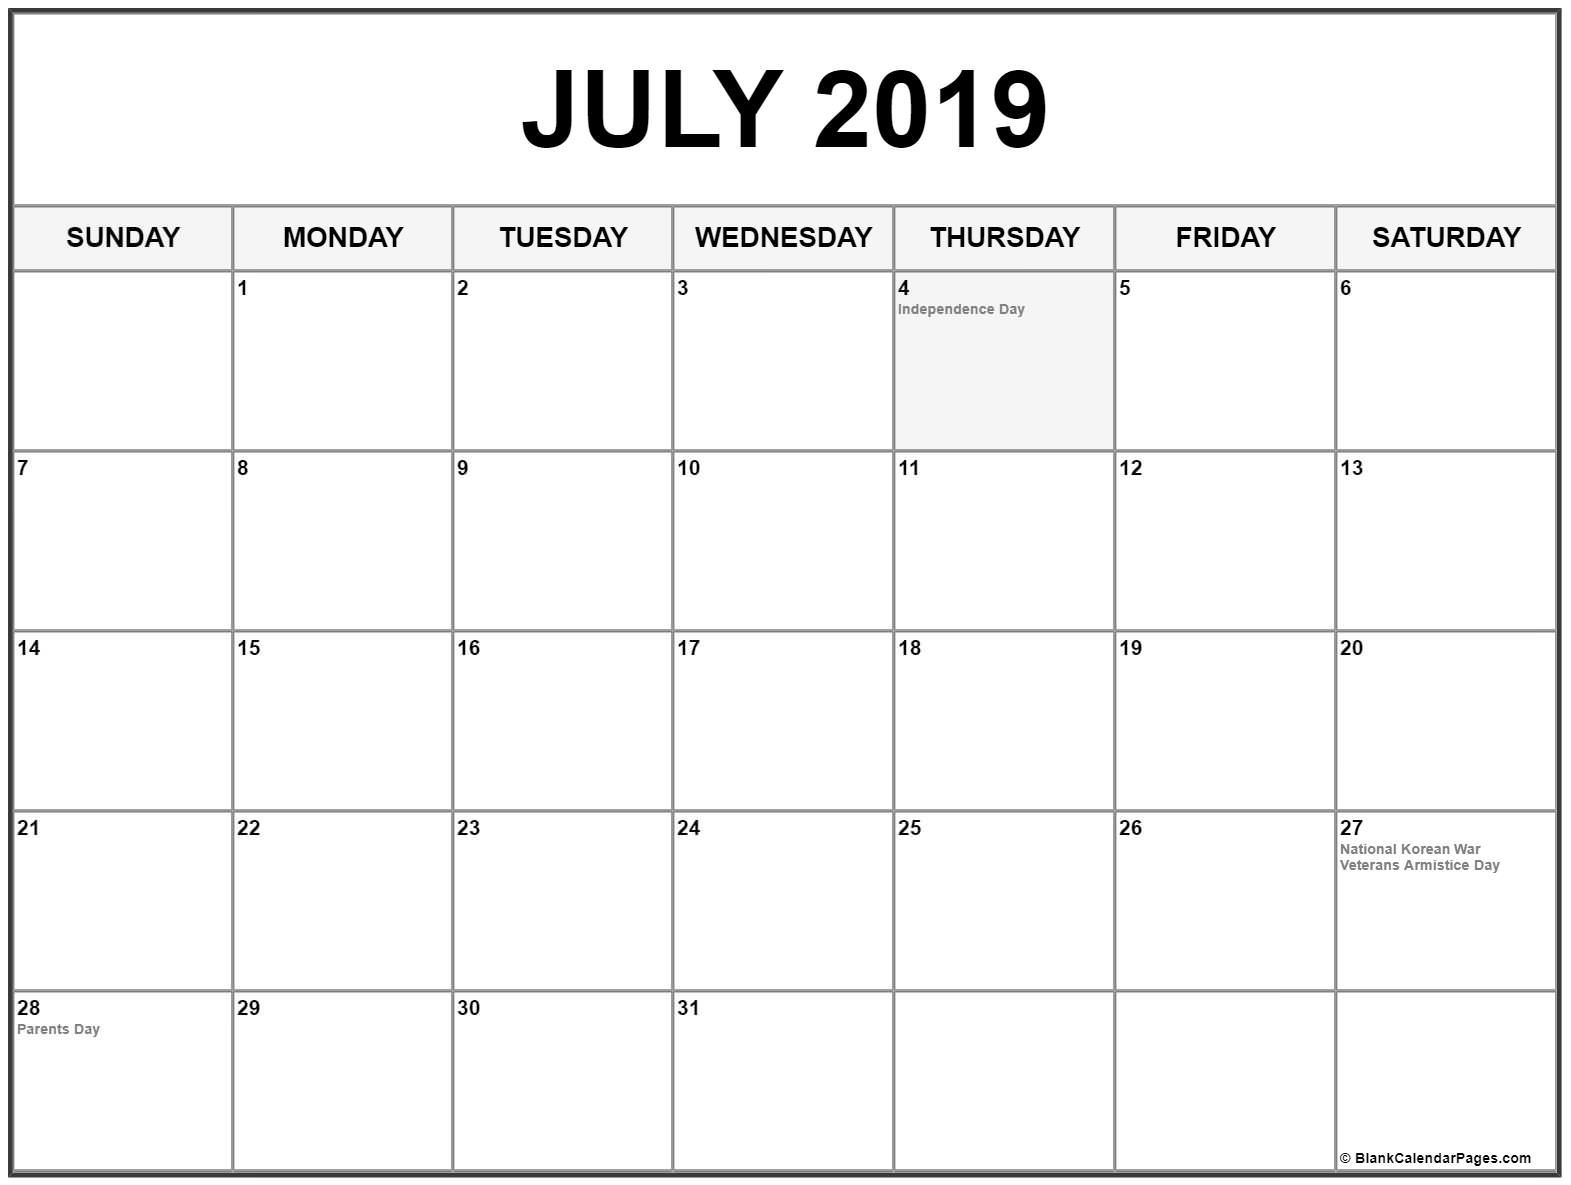 July 2019 Calendar With Holidays #july #july2019